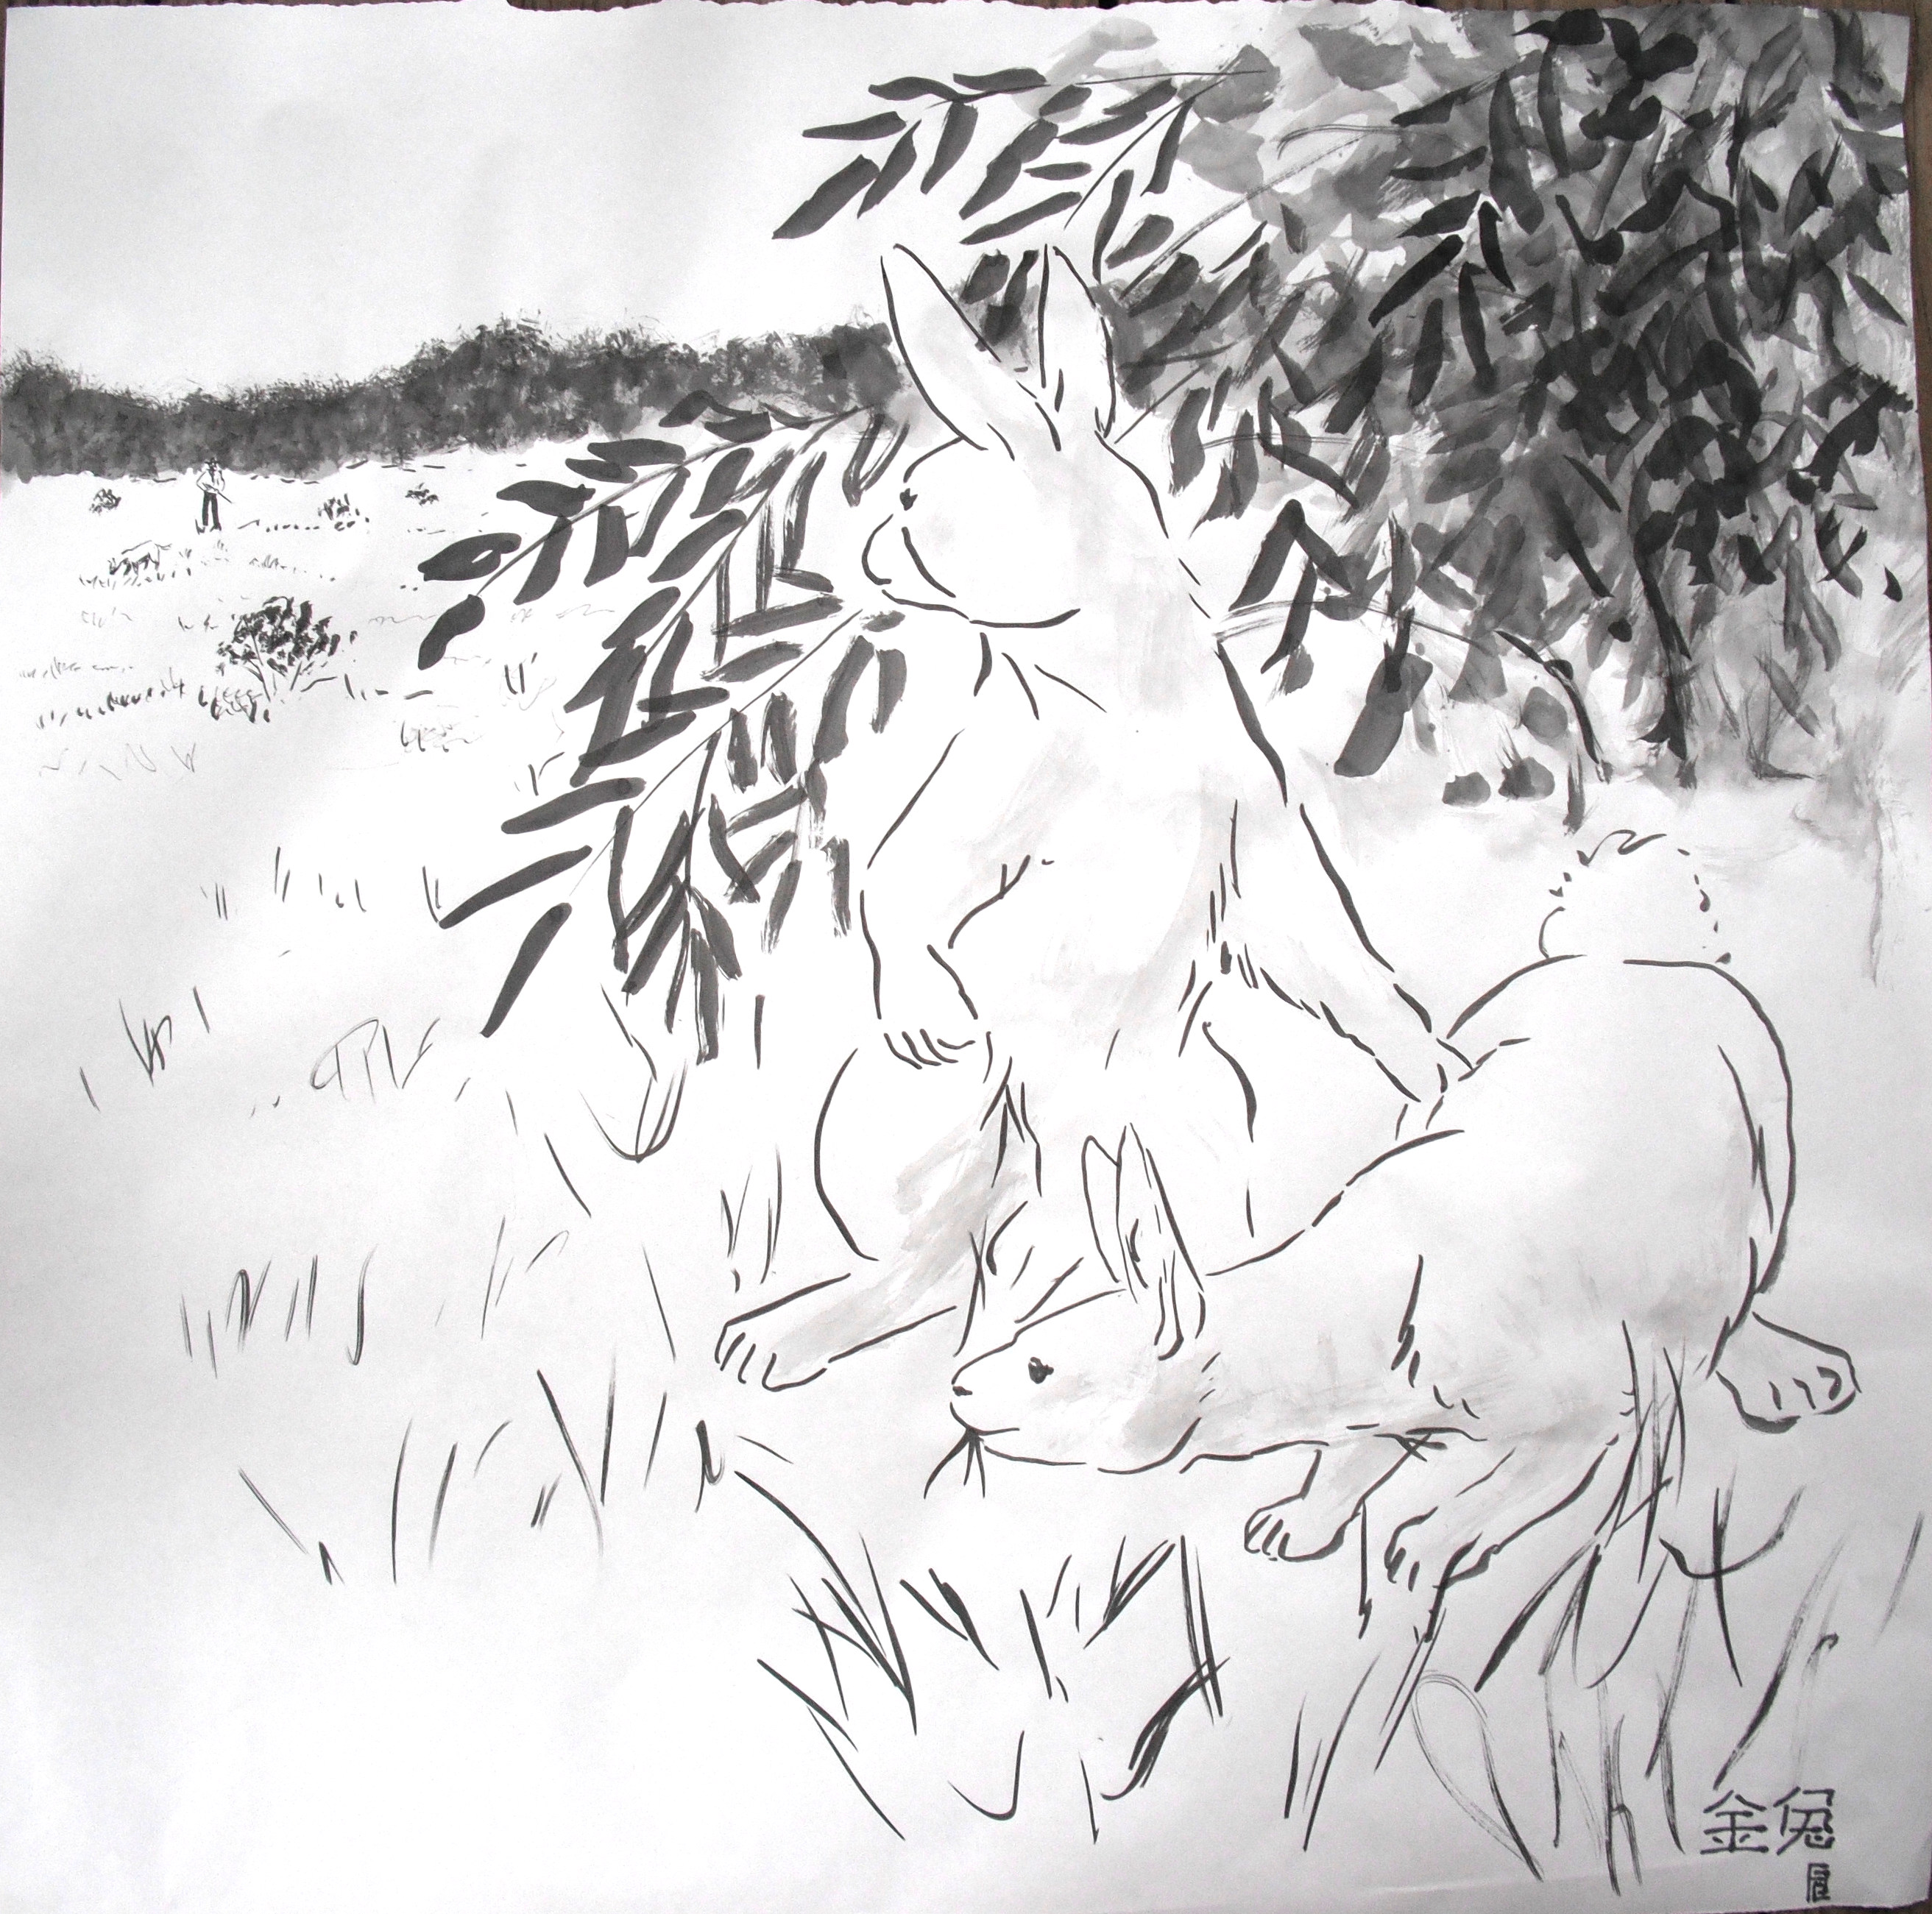 image of rabbits being hunted